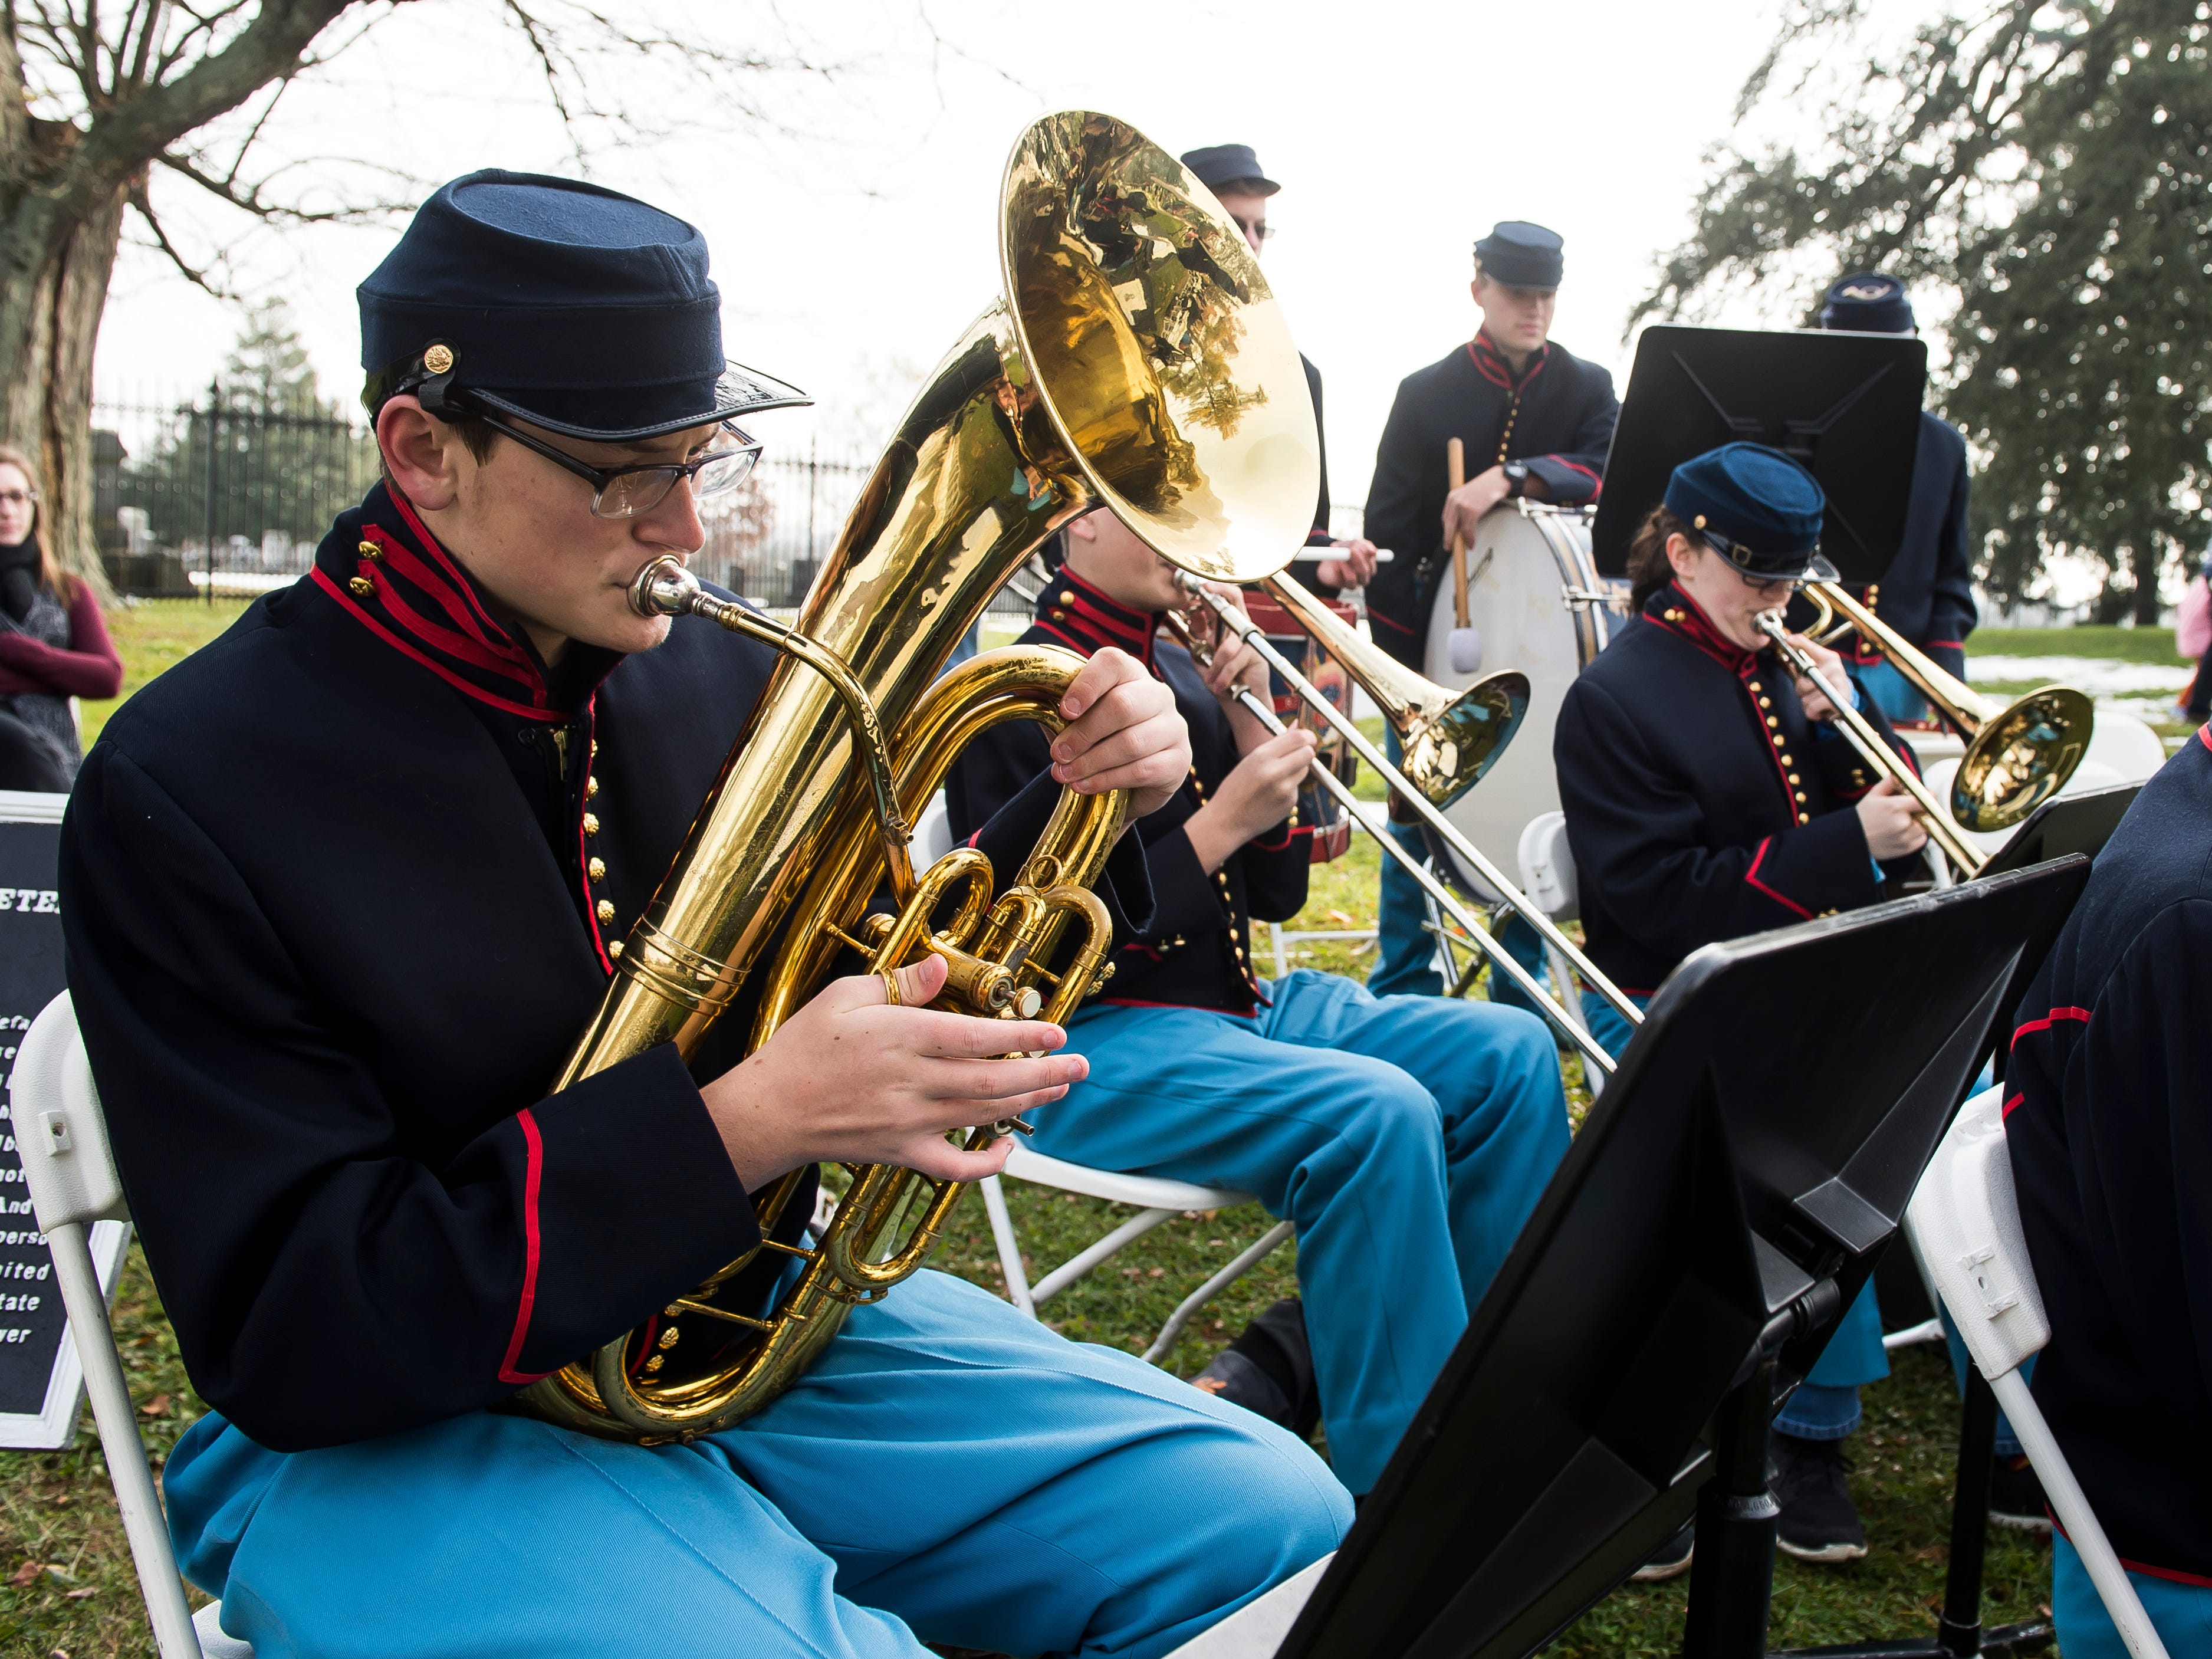 Evan Keyser plays the baritone as a part of the Gettysburg High School ceremonial band during Dedication Day in Gettysburg on November, 19, 2018.